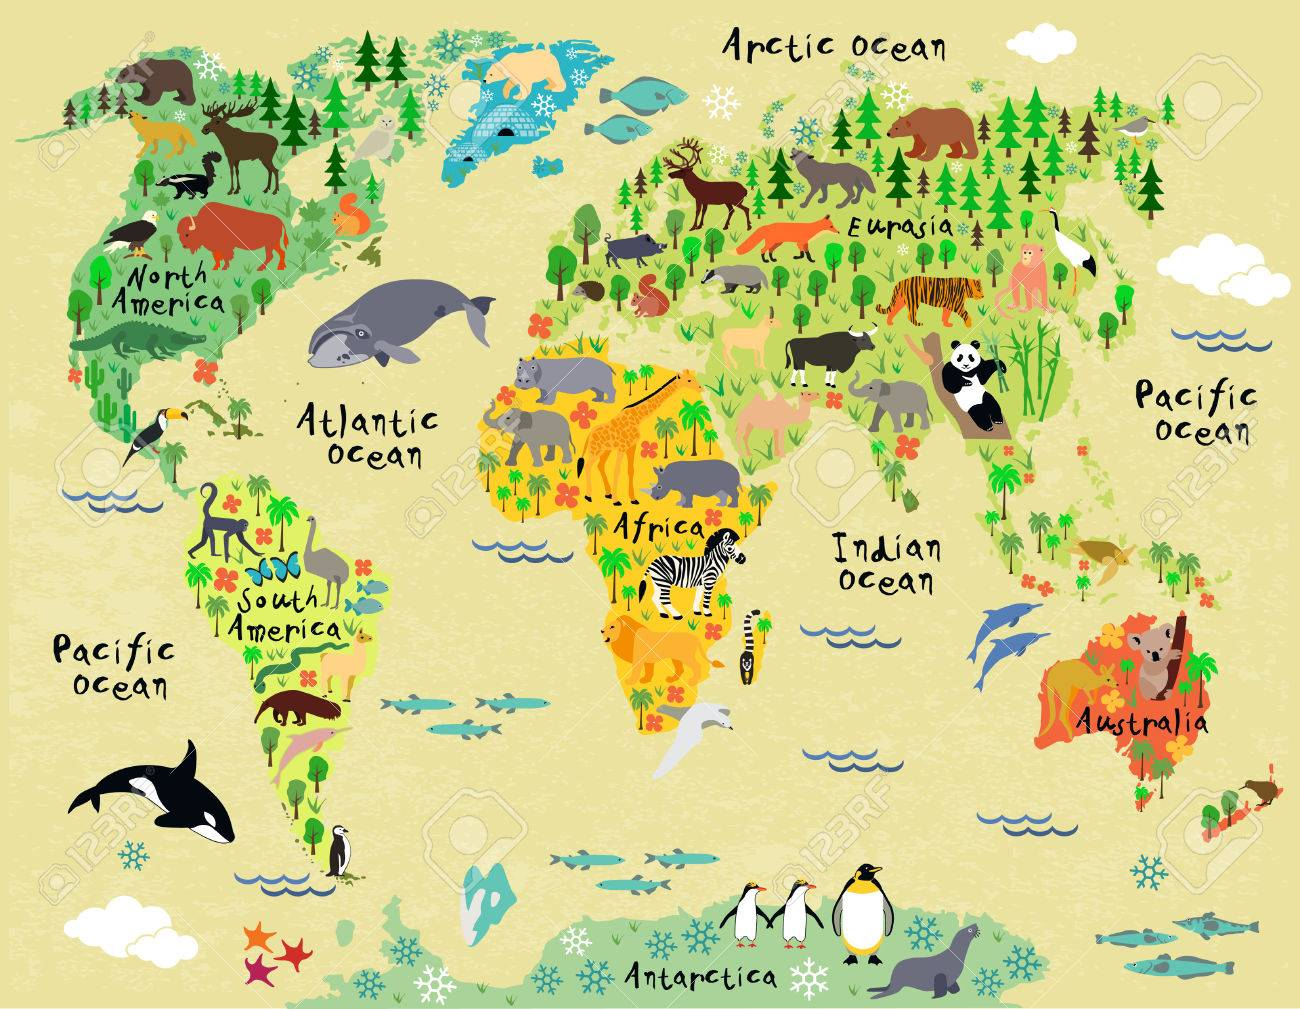 Animal map of the world for children and kids on playas n. america, rivers america, map italy, map europe, funny america, ohio state america, states in america, latin america, map mexico, map canada, north america, atlas america, map belize, club america, central america, map georgia, vincennes map america, map australia, physical map america,